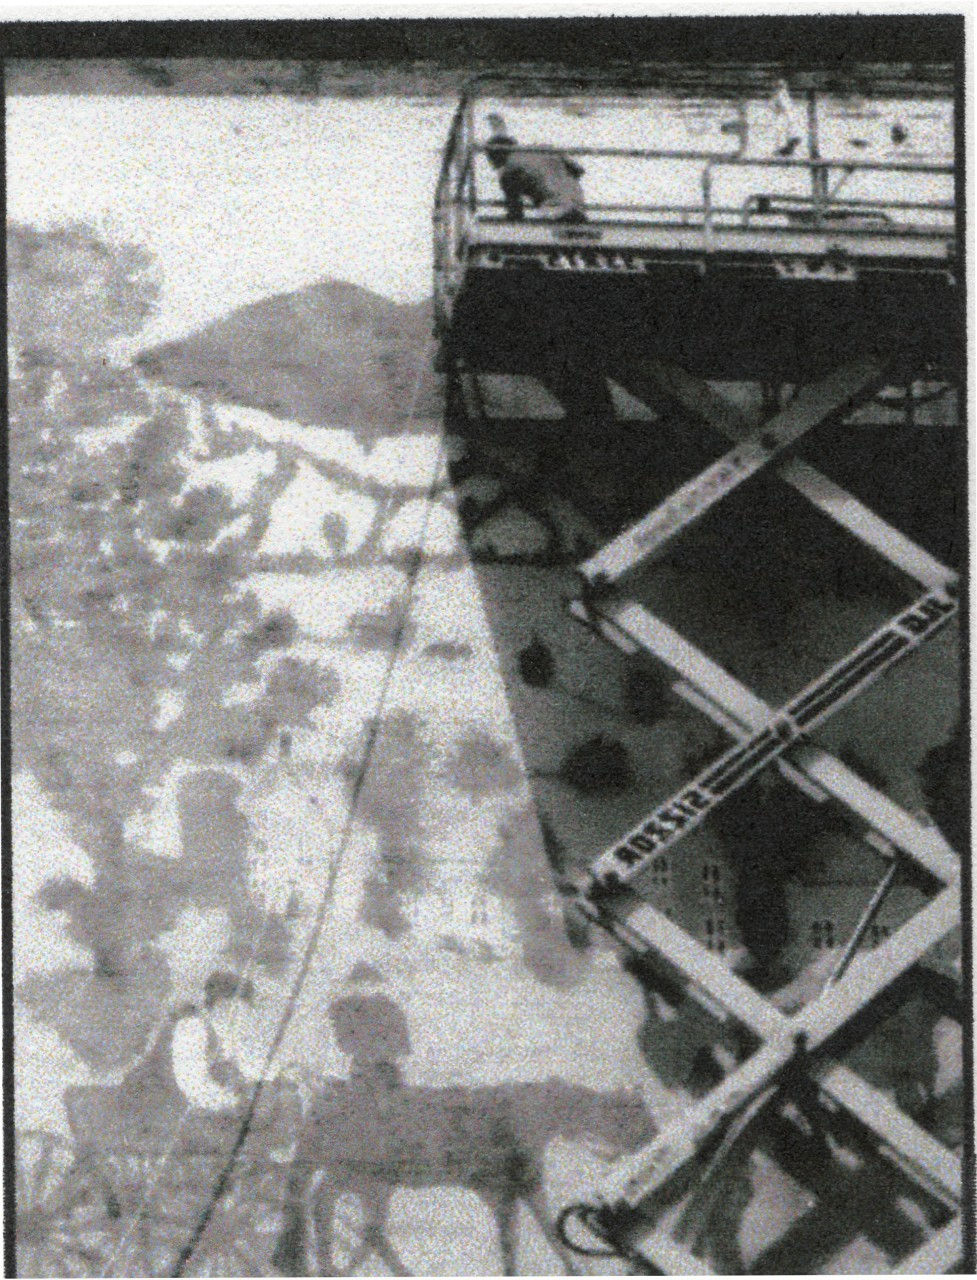 painting from a hydraulic lift